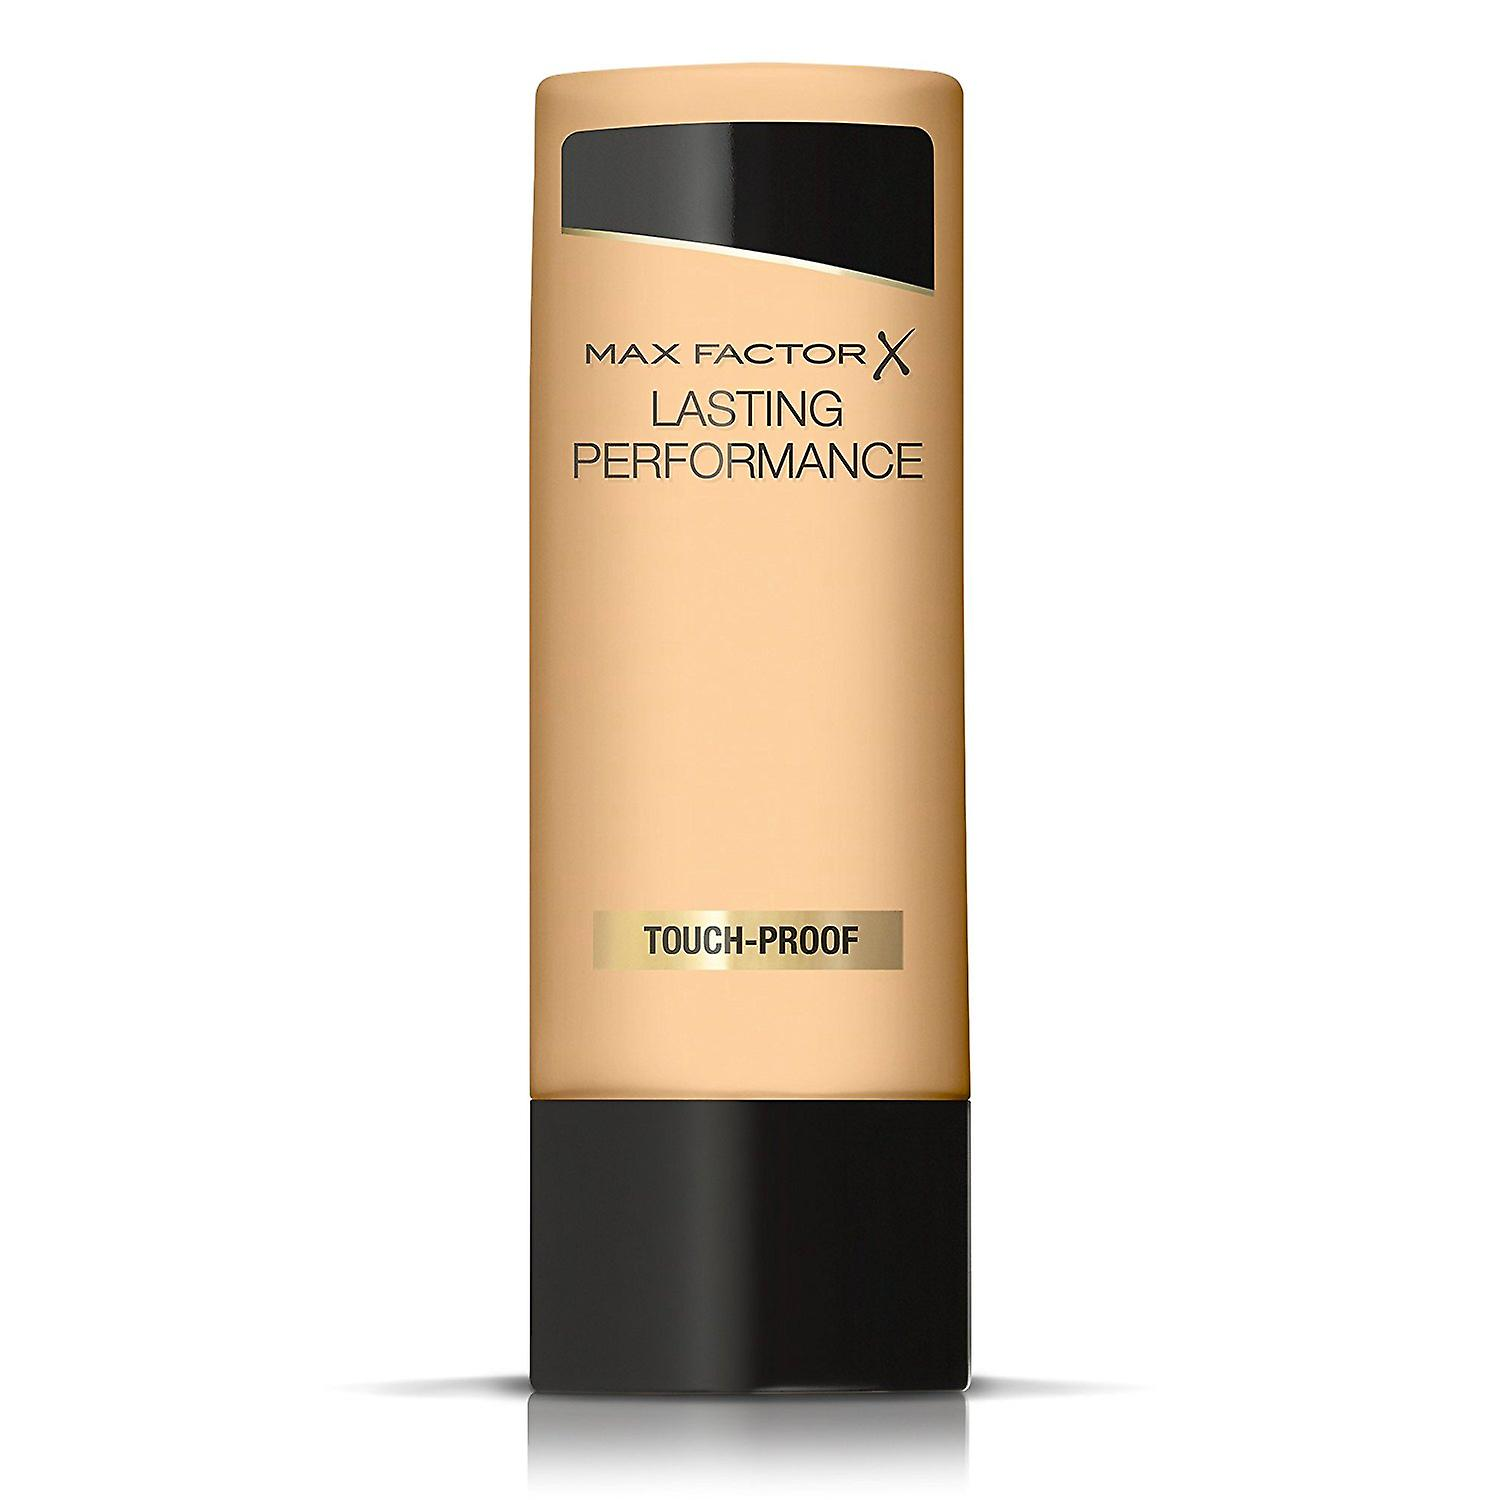 Proof Factor Max Lasting 35mlVarious Performance Foundation Shades 3 Touch X KuJ3lcFT1